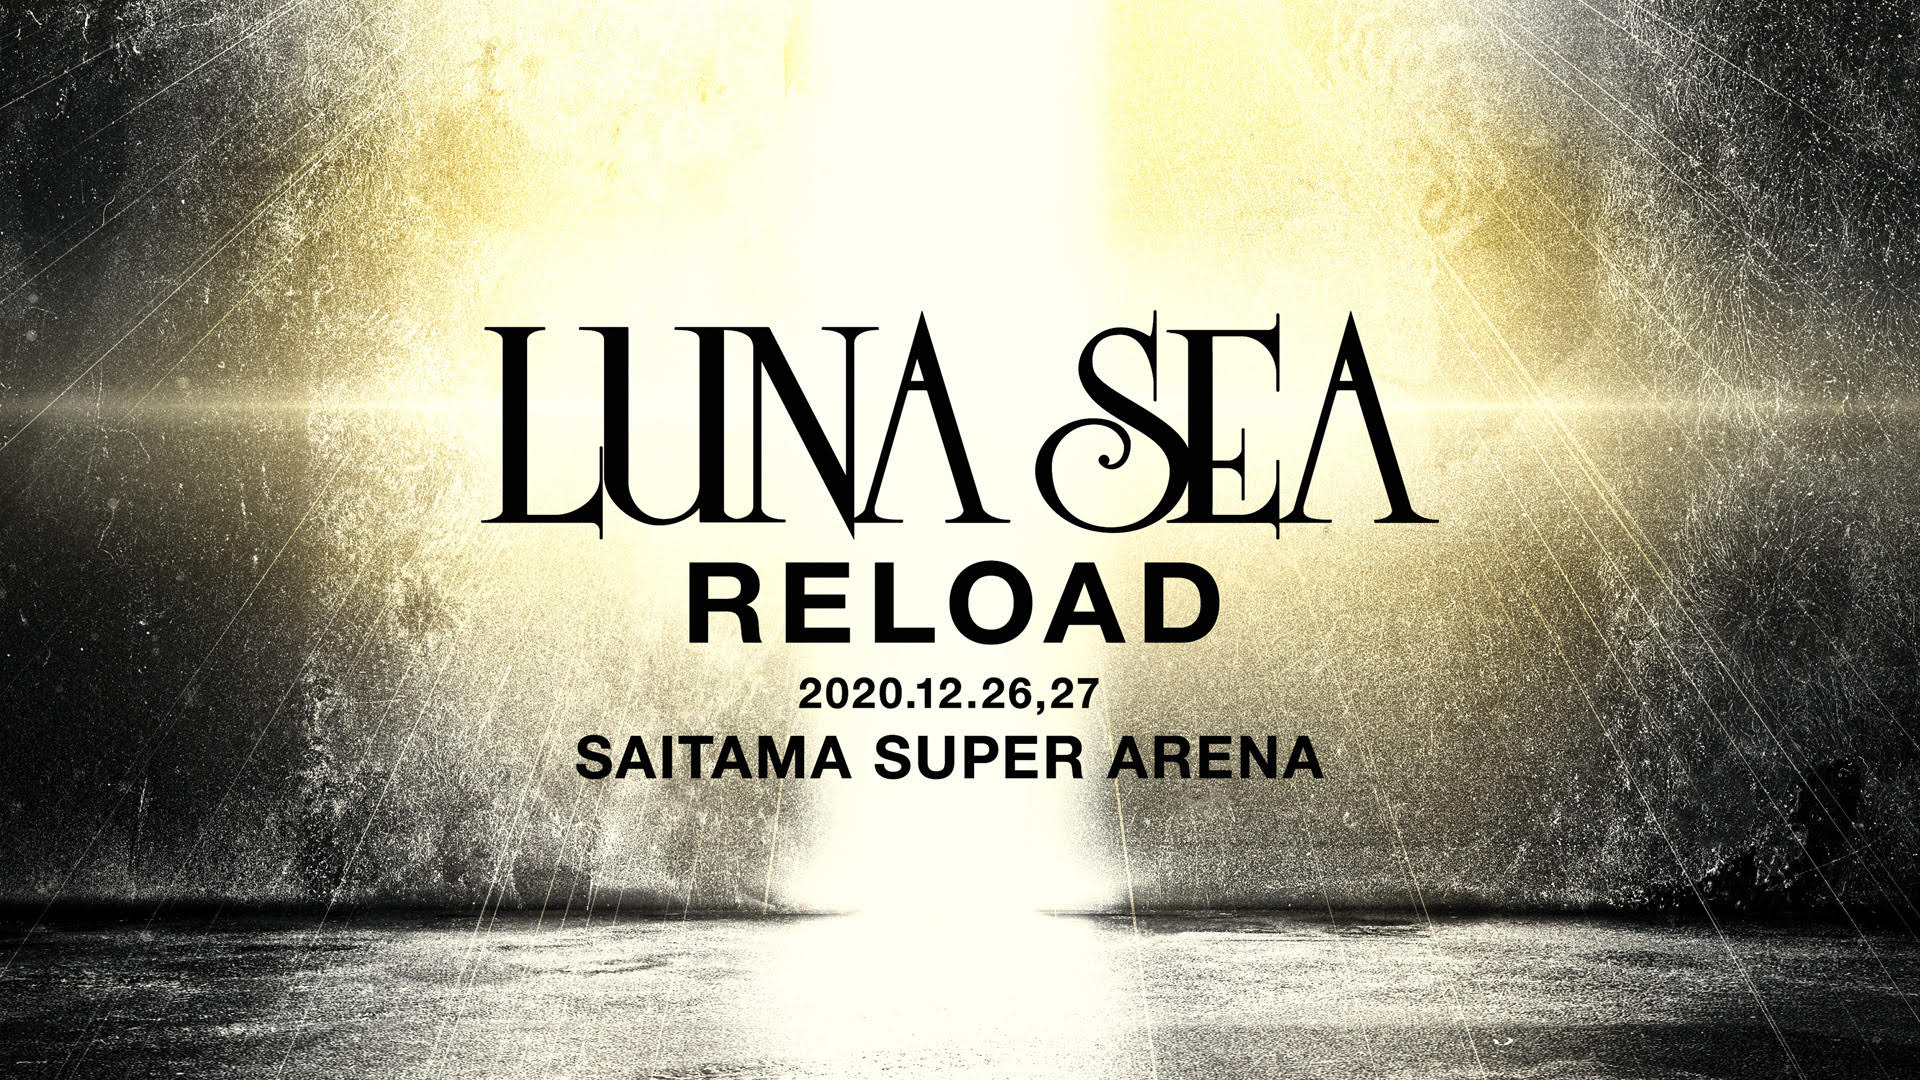 """LUNA SEA -RELOAD-"" Live performance will be held at Saitama Super Arena 2 DAYS!!"